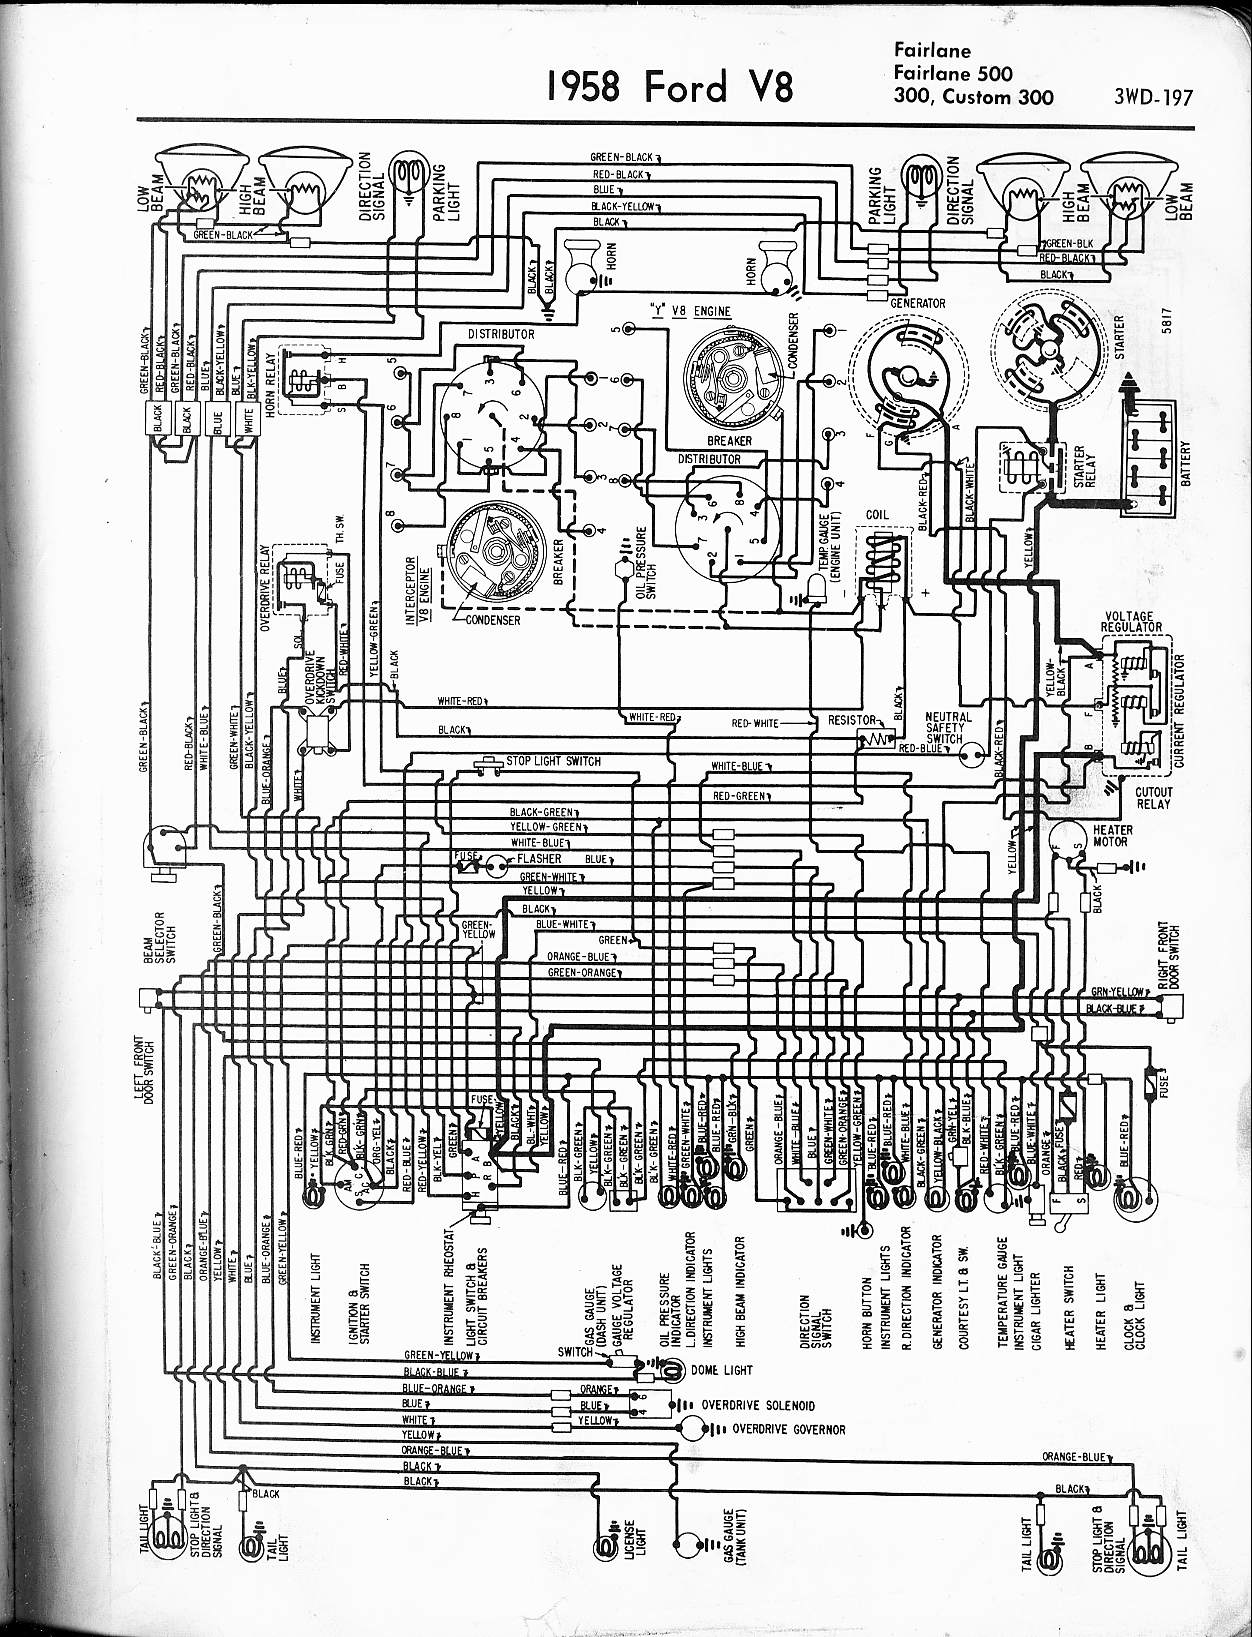 68 ford wiring diagram learn circuit diagram u2022 rh gadgetowl co wiring diagram ford 600 tractor wiring diagram ford 600 tractor